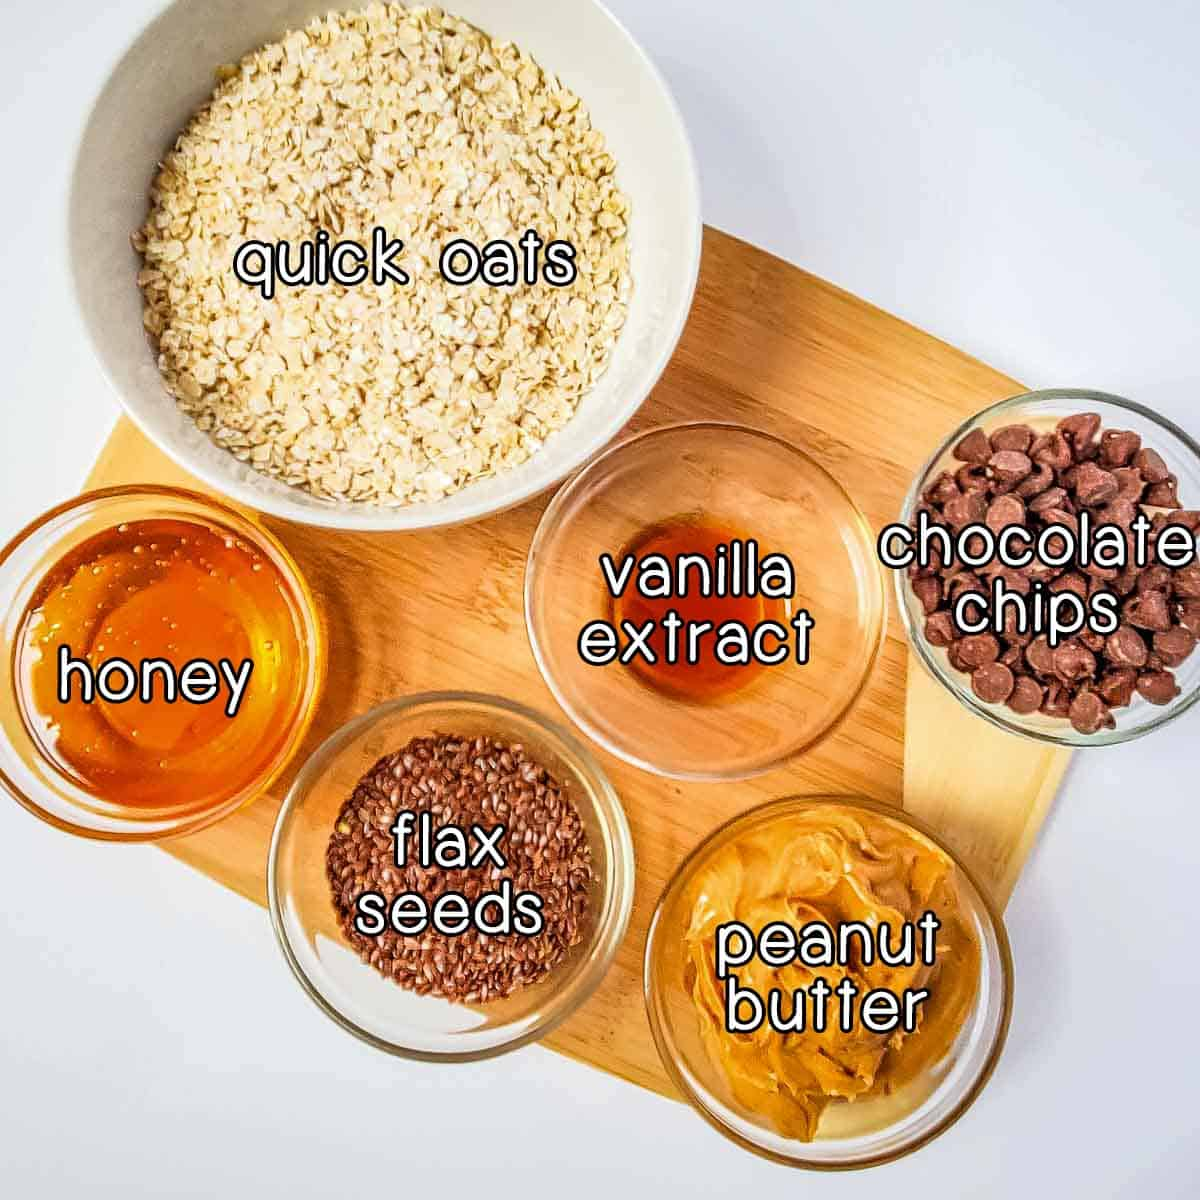 Overhead shot of ingredients laid out on a cutting board- quick oats, vanilla extract, chocolate chips, peanut butter, flax seeds, and honey.